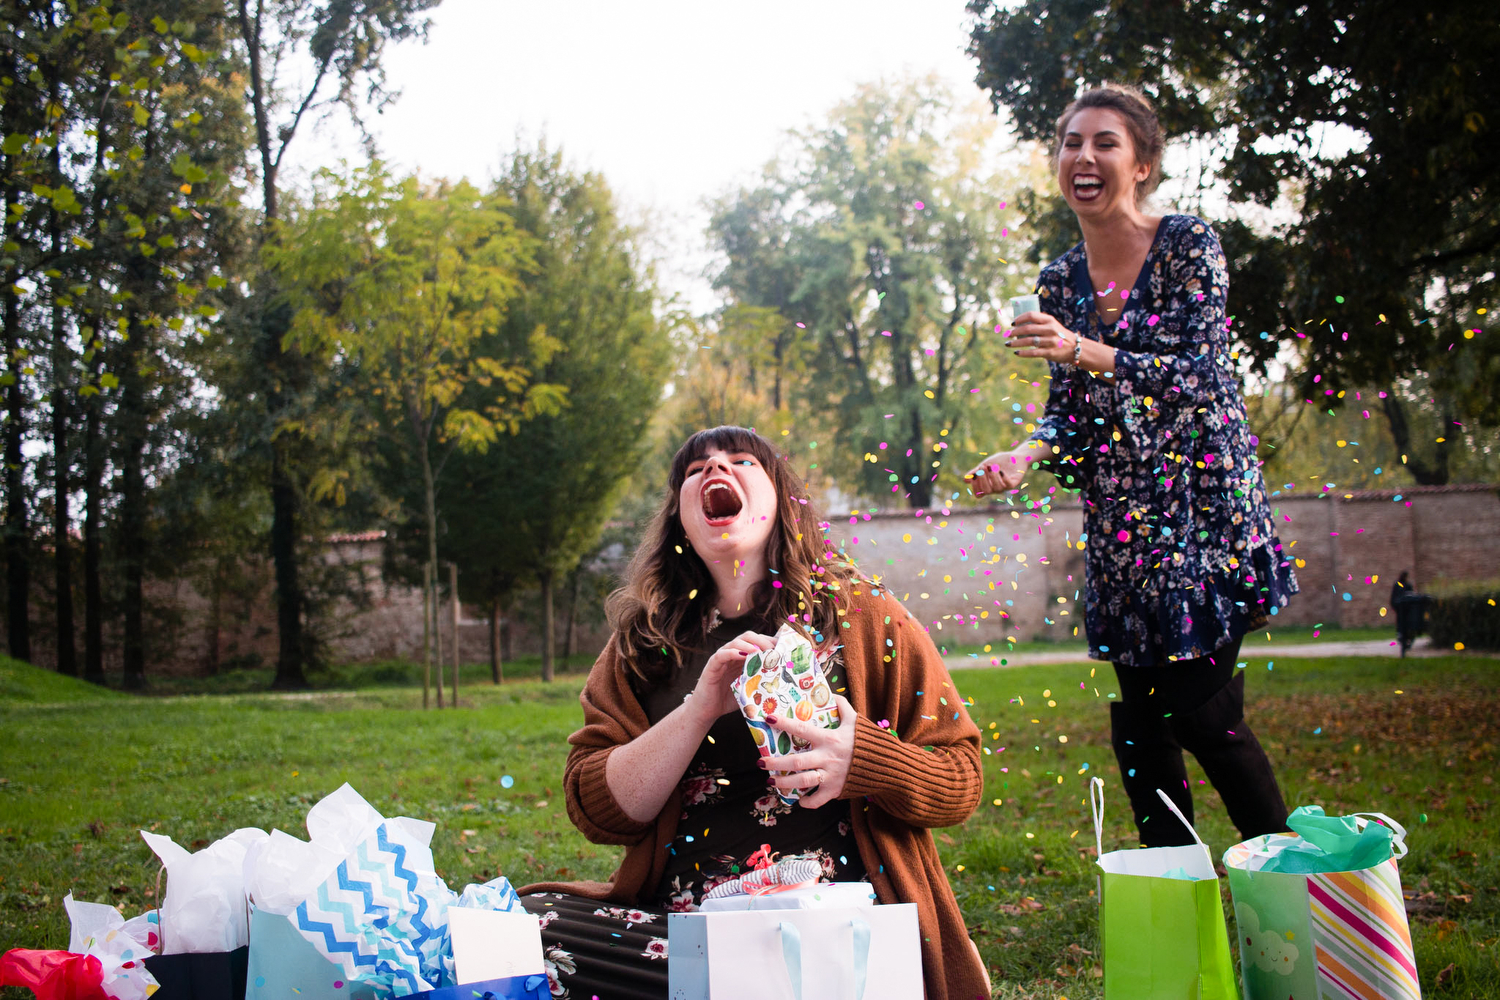 Baby shower photos by Cait Griffin